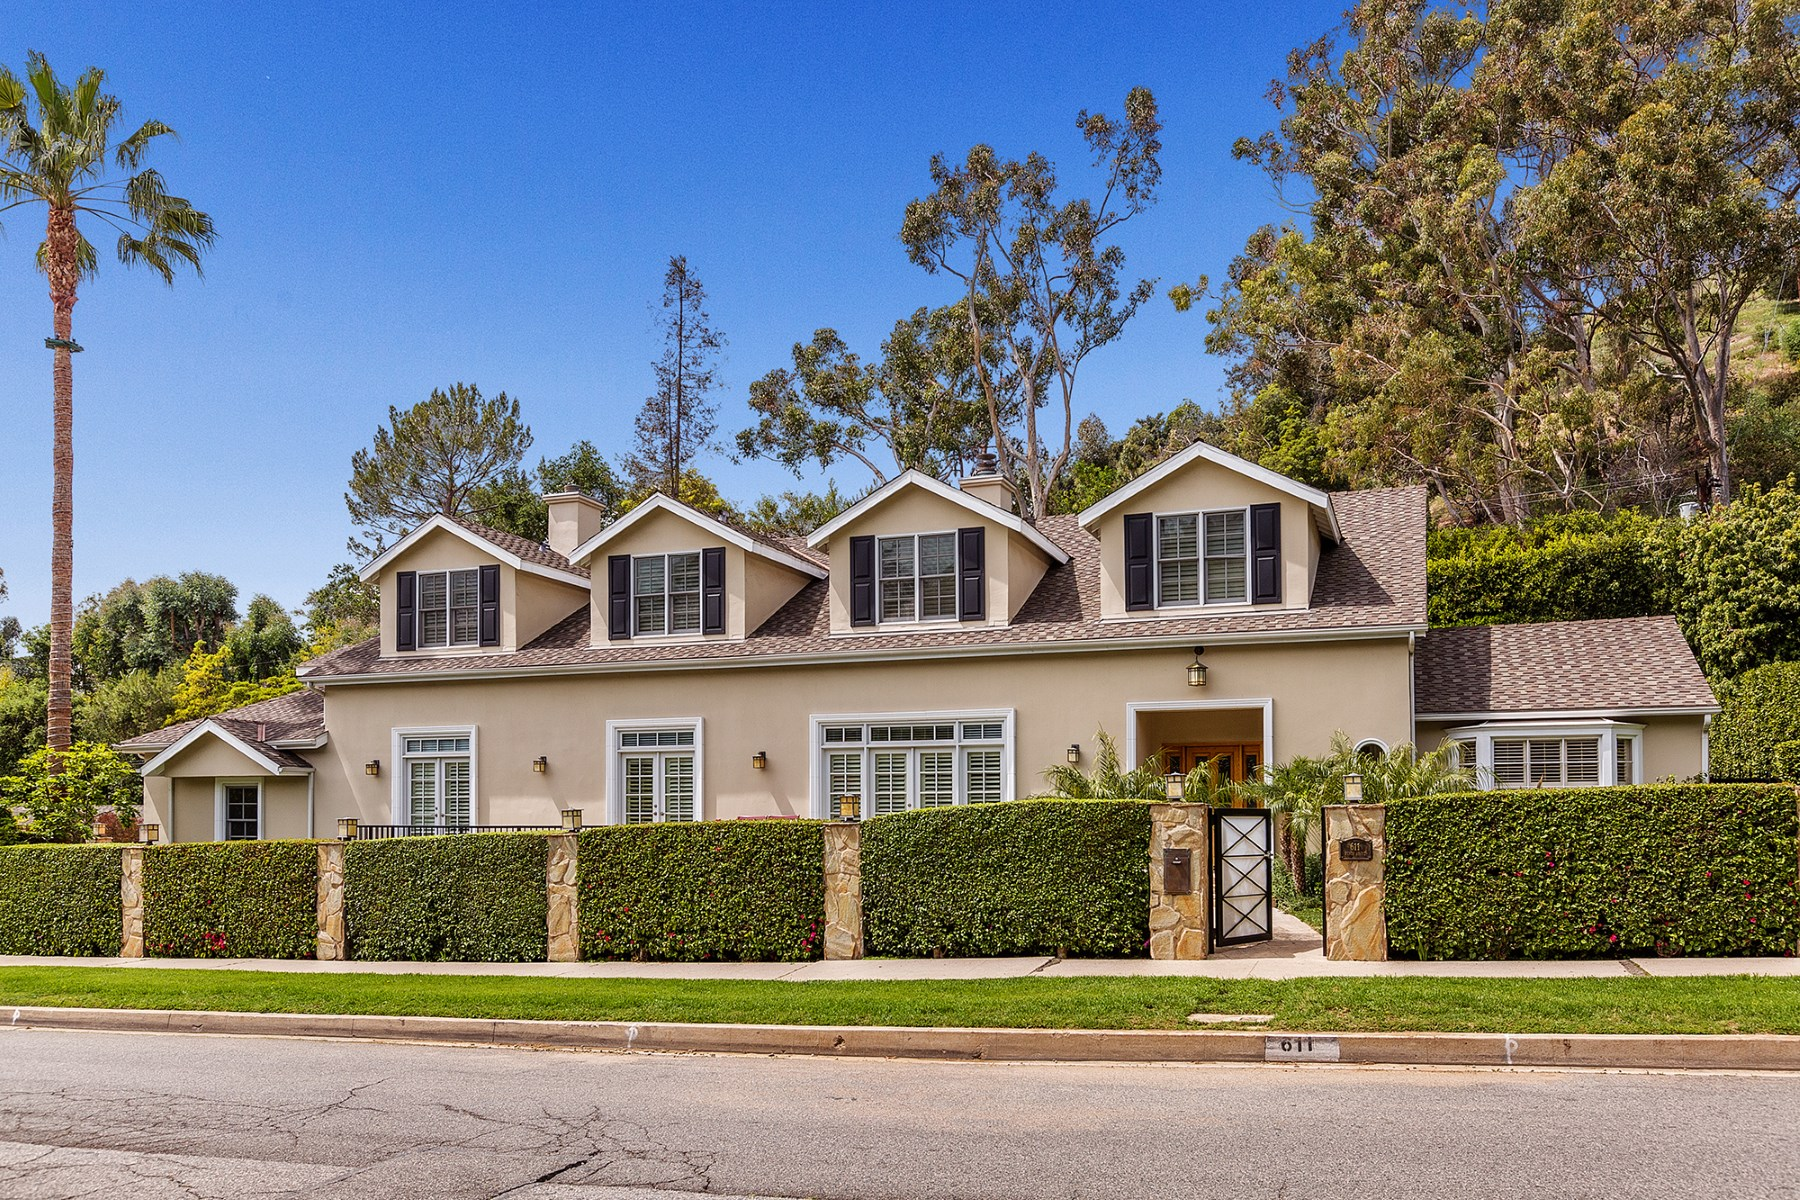 Casa Unifamiliar por un Venta en Exceptional Brentwood Home 611 North Bundy Drive Brentwood, Los Angeles, California, 90049 Estados Unidos